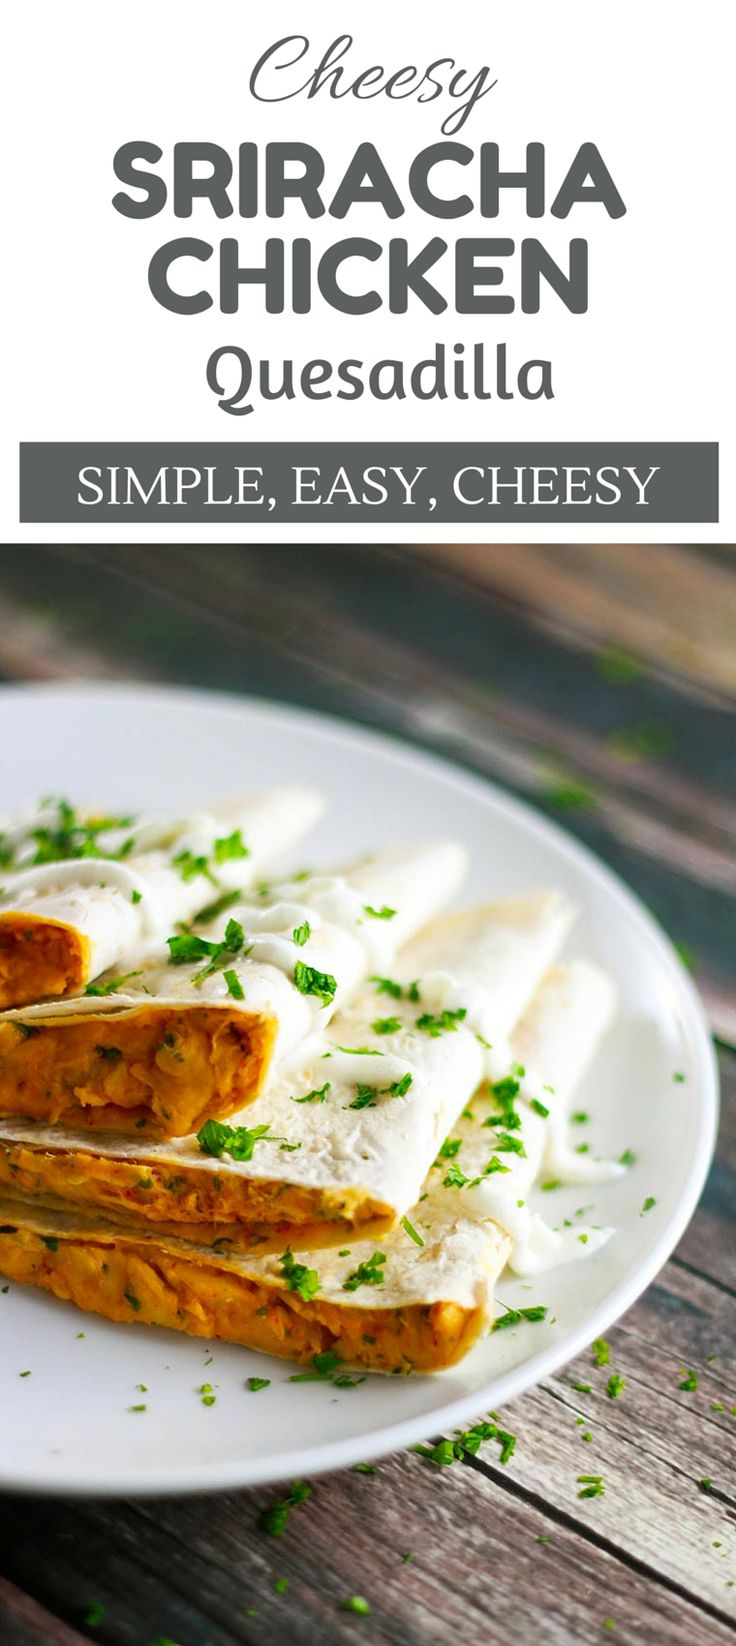 Whether you've jumped onto the sriracha-loving bandwagon yet or not, you will absolutely love this quesadilla! Simple and easy to make, but it tastes amazing!